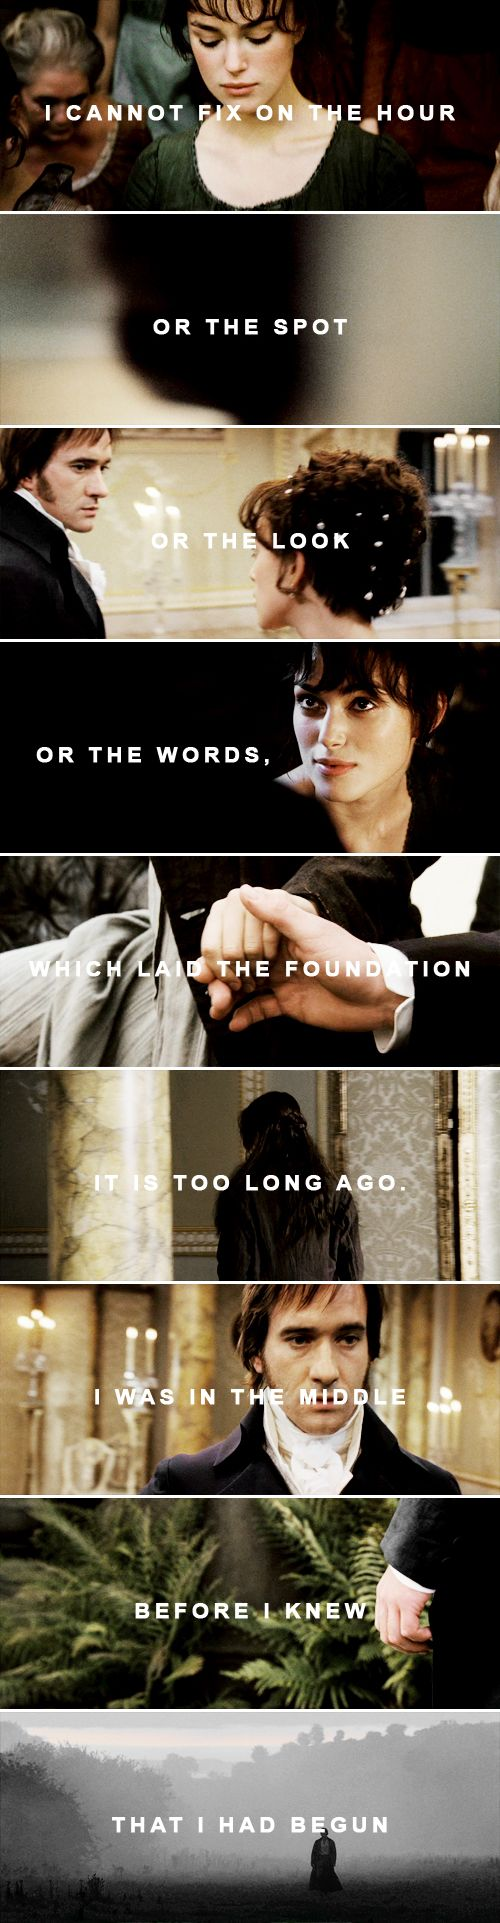 "Elizabeth's spirits soon rising to playfulness again, she wanted Mr. Darcy to account for his having ever fallen in love with her. ""How could you begin?"" said she. ""I can comprehend your going on charmingly, when you had once made a beginning; but what could set you off in the first place?"""